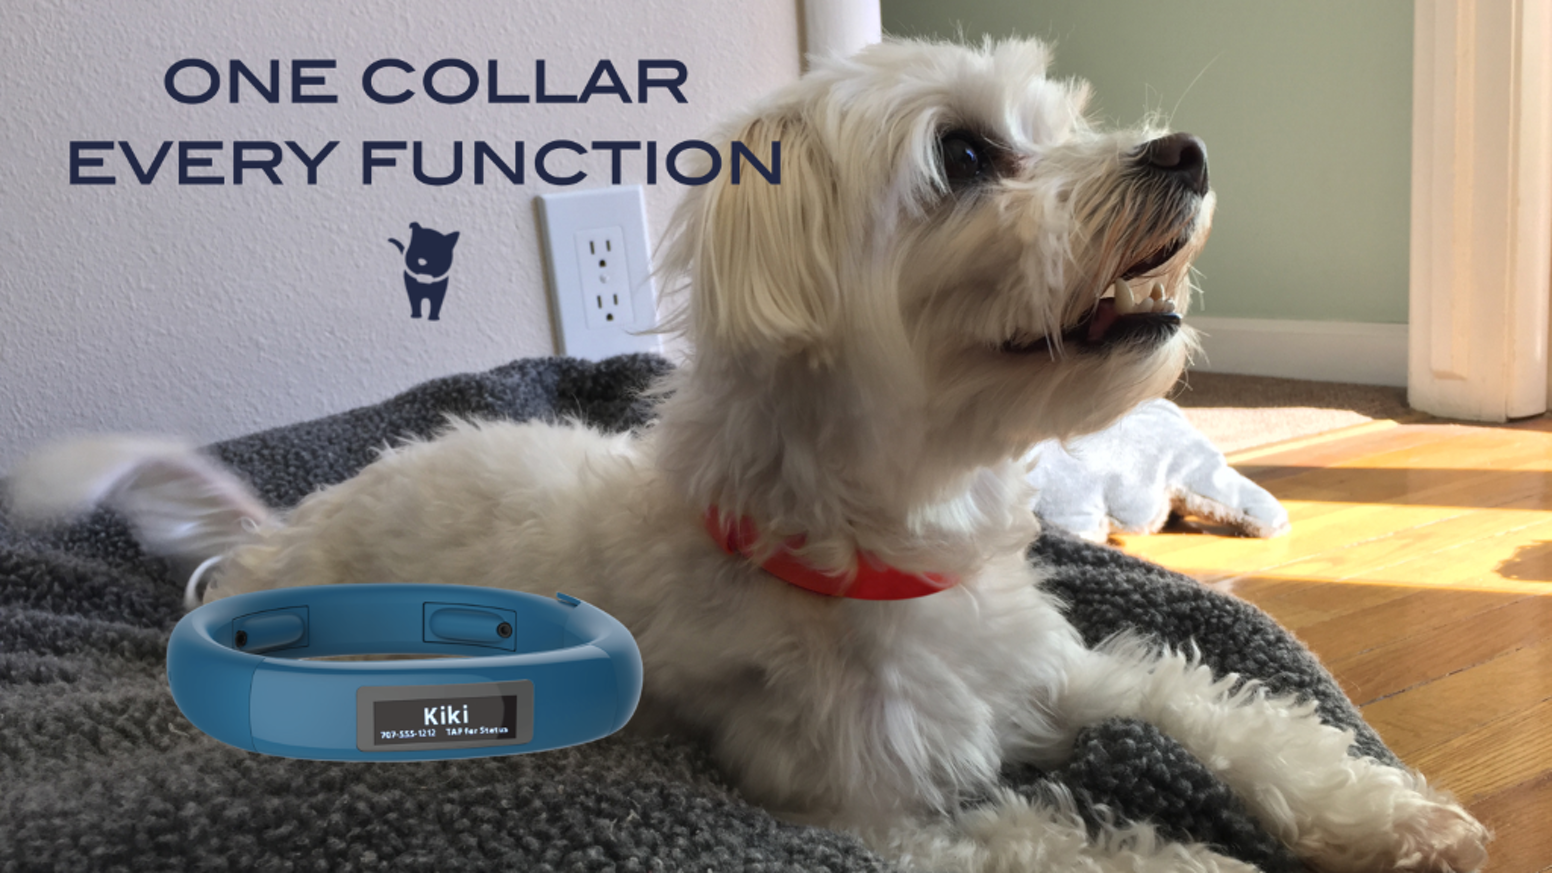 Scollar Mini is built on an open platform to grow and change with the dynamic needs of your pets, for every stage of their lives.